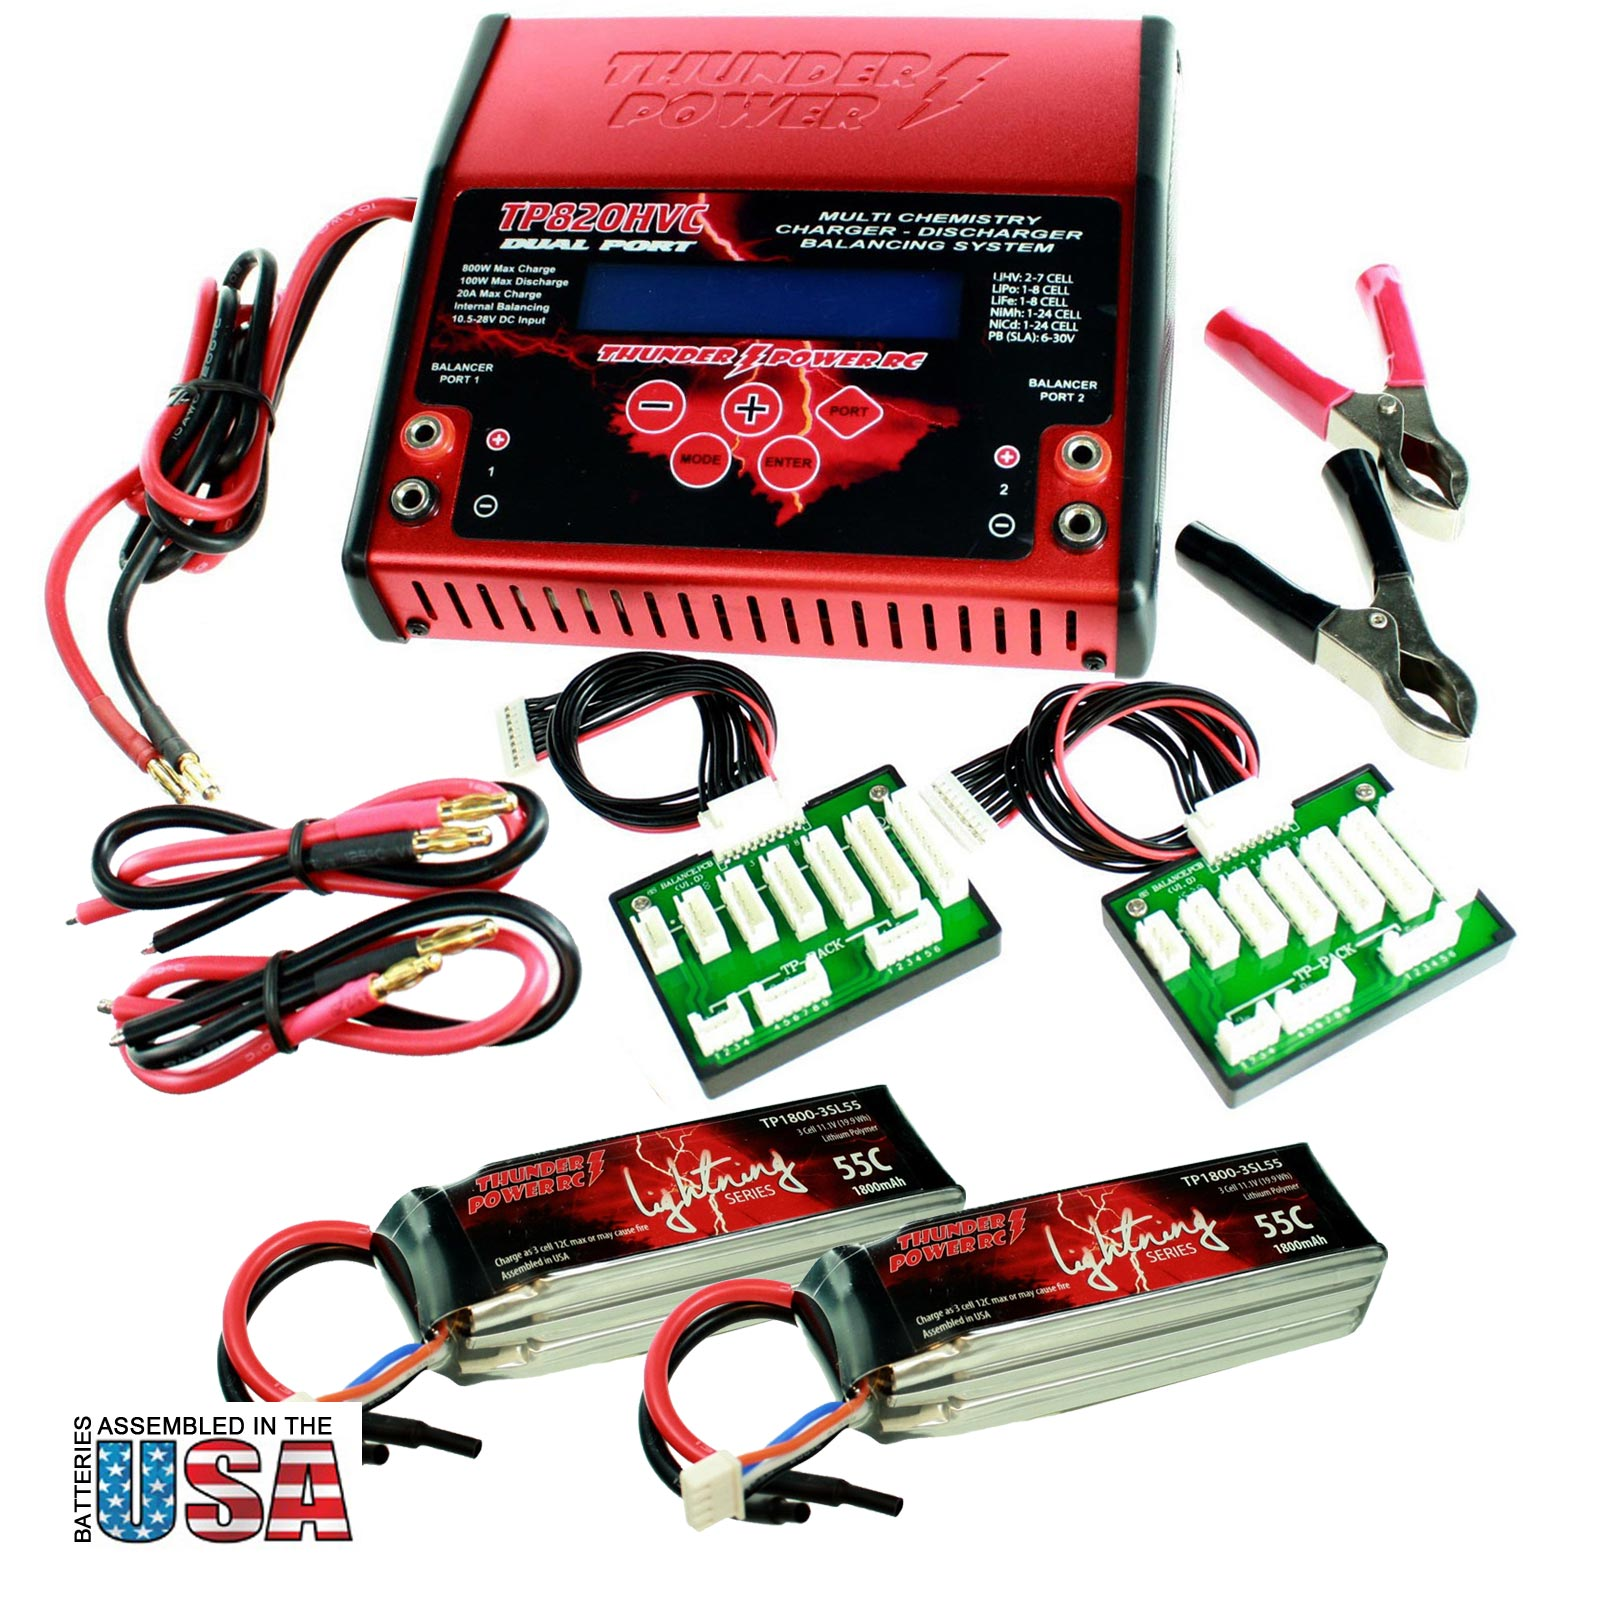 Battery Charger + 2 1800mAh Batteries For Pro RC Boat ...